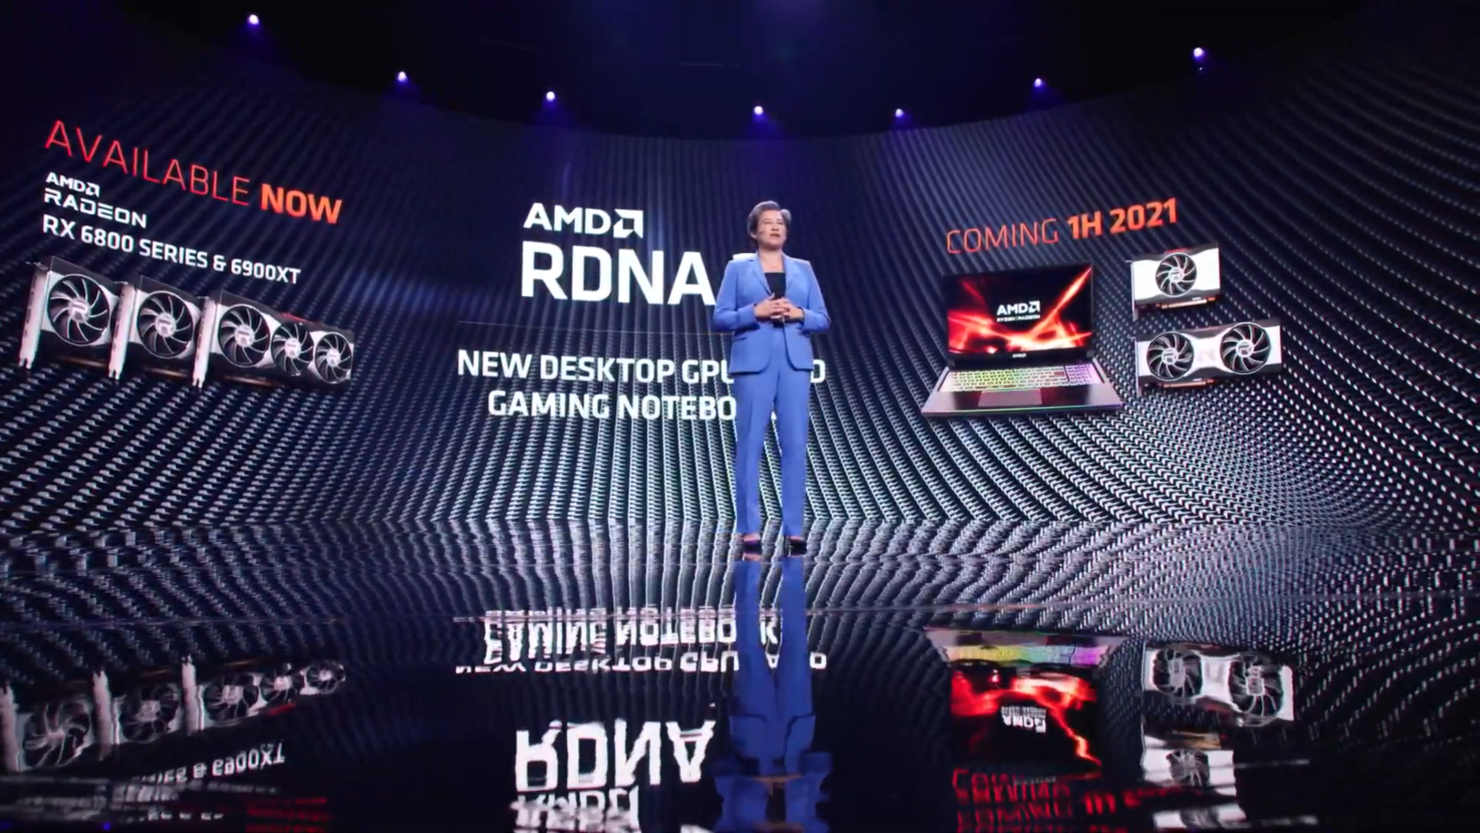 amd-radeon-rx-6700-xt-12-gb-'rdna-2'-graphics-card-rumored-to-launch-on-18th-march